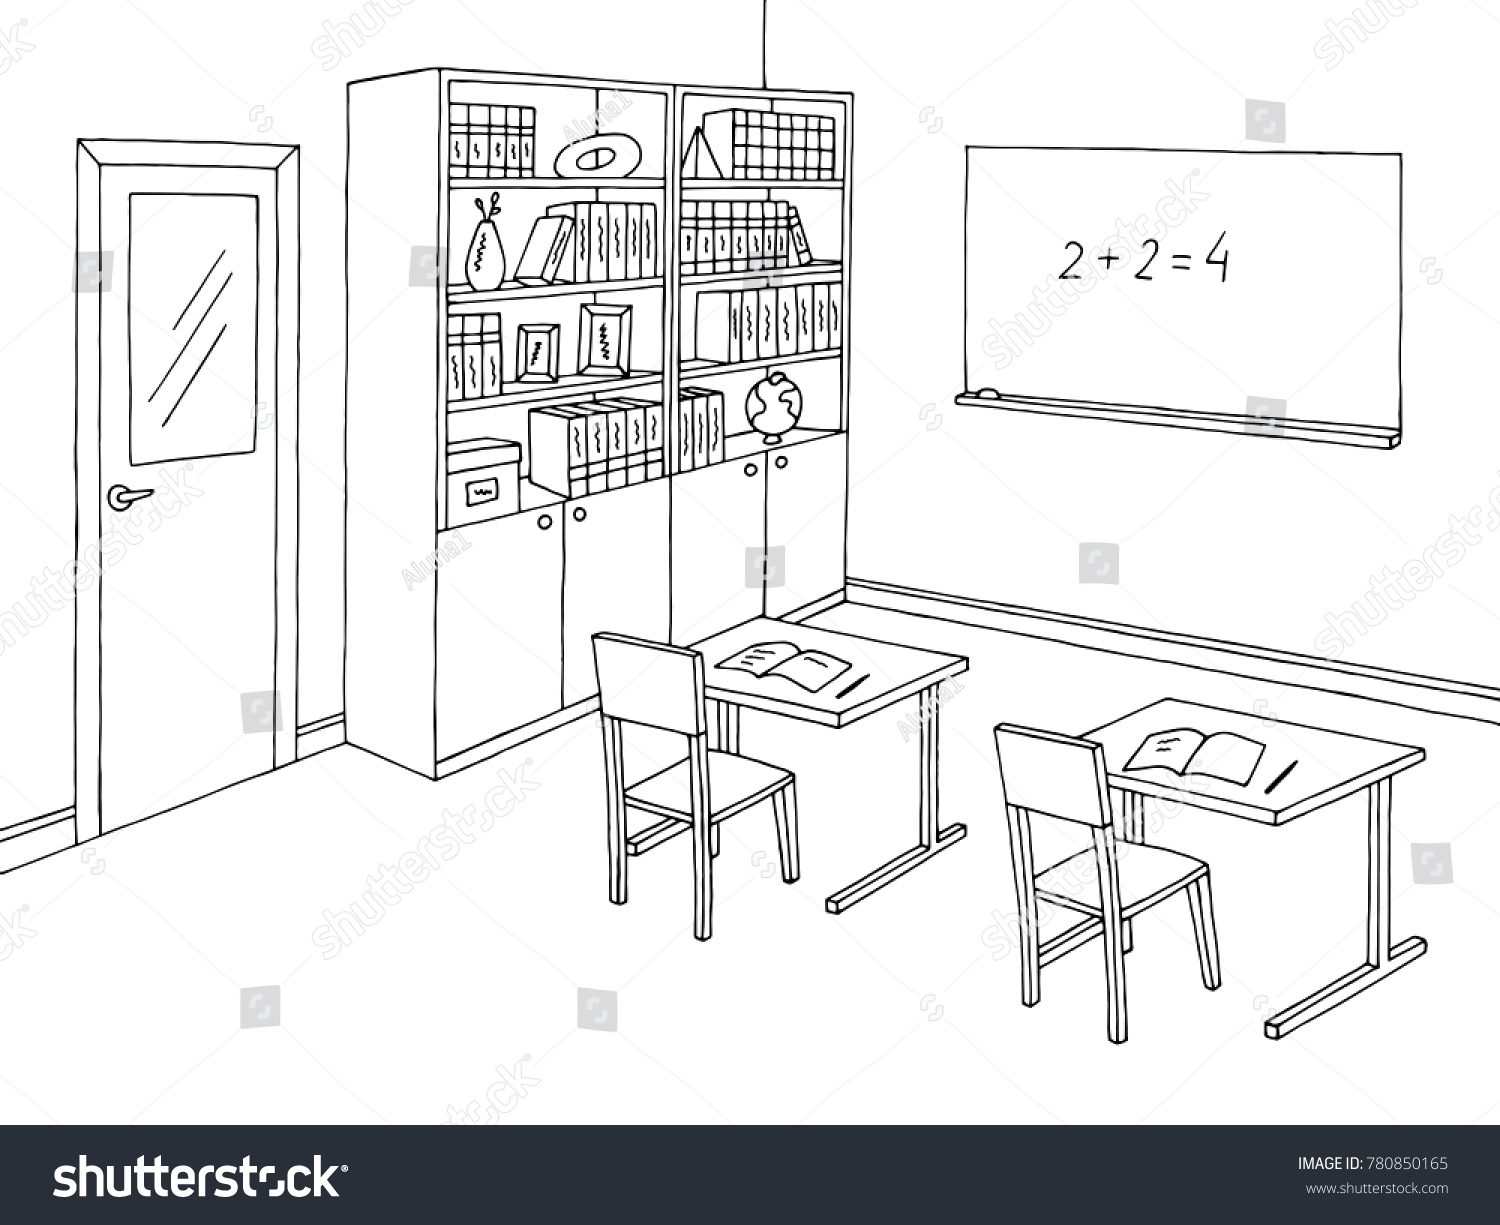 Classroom Clipart Black And White (97+ images in Collection) Page 1.